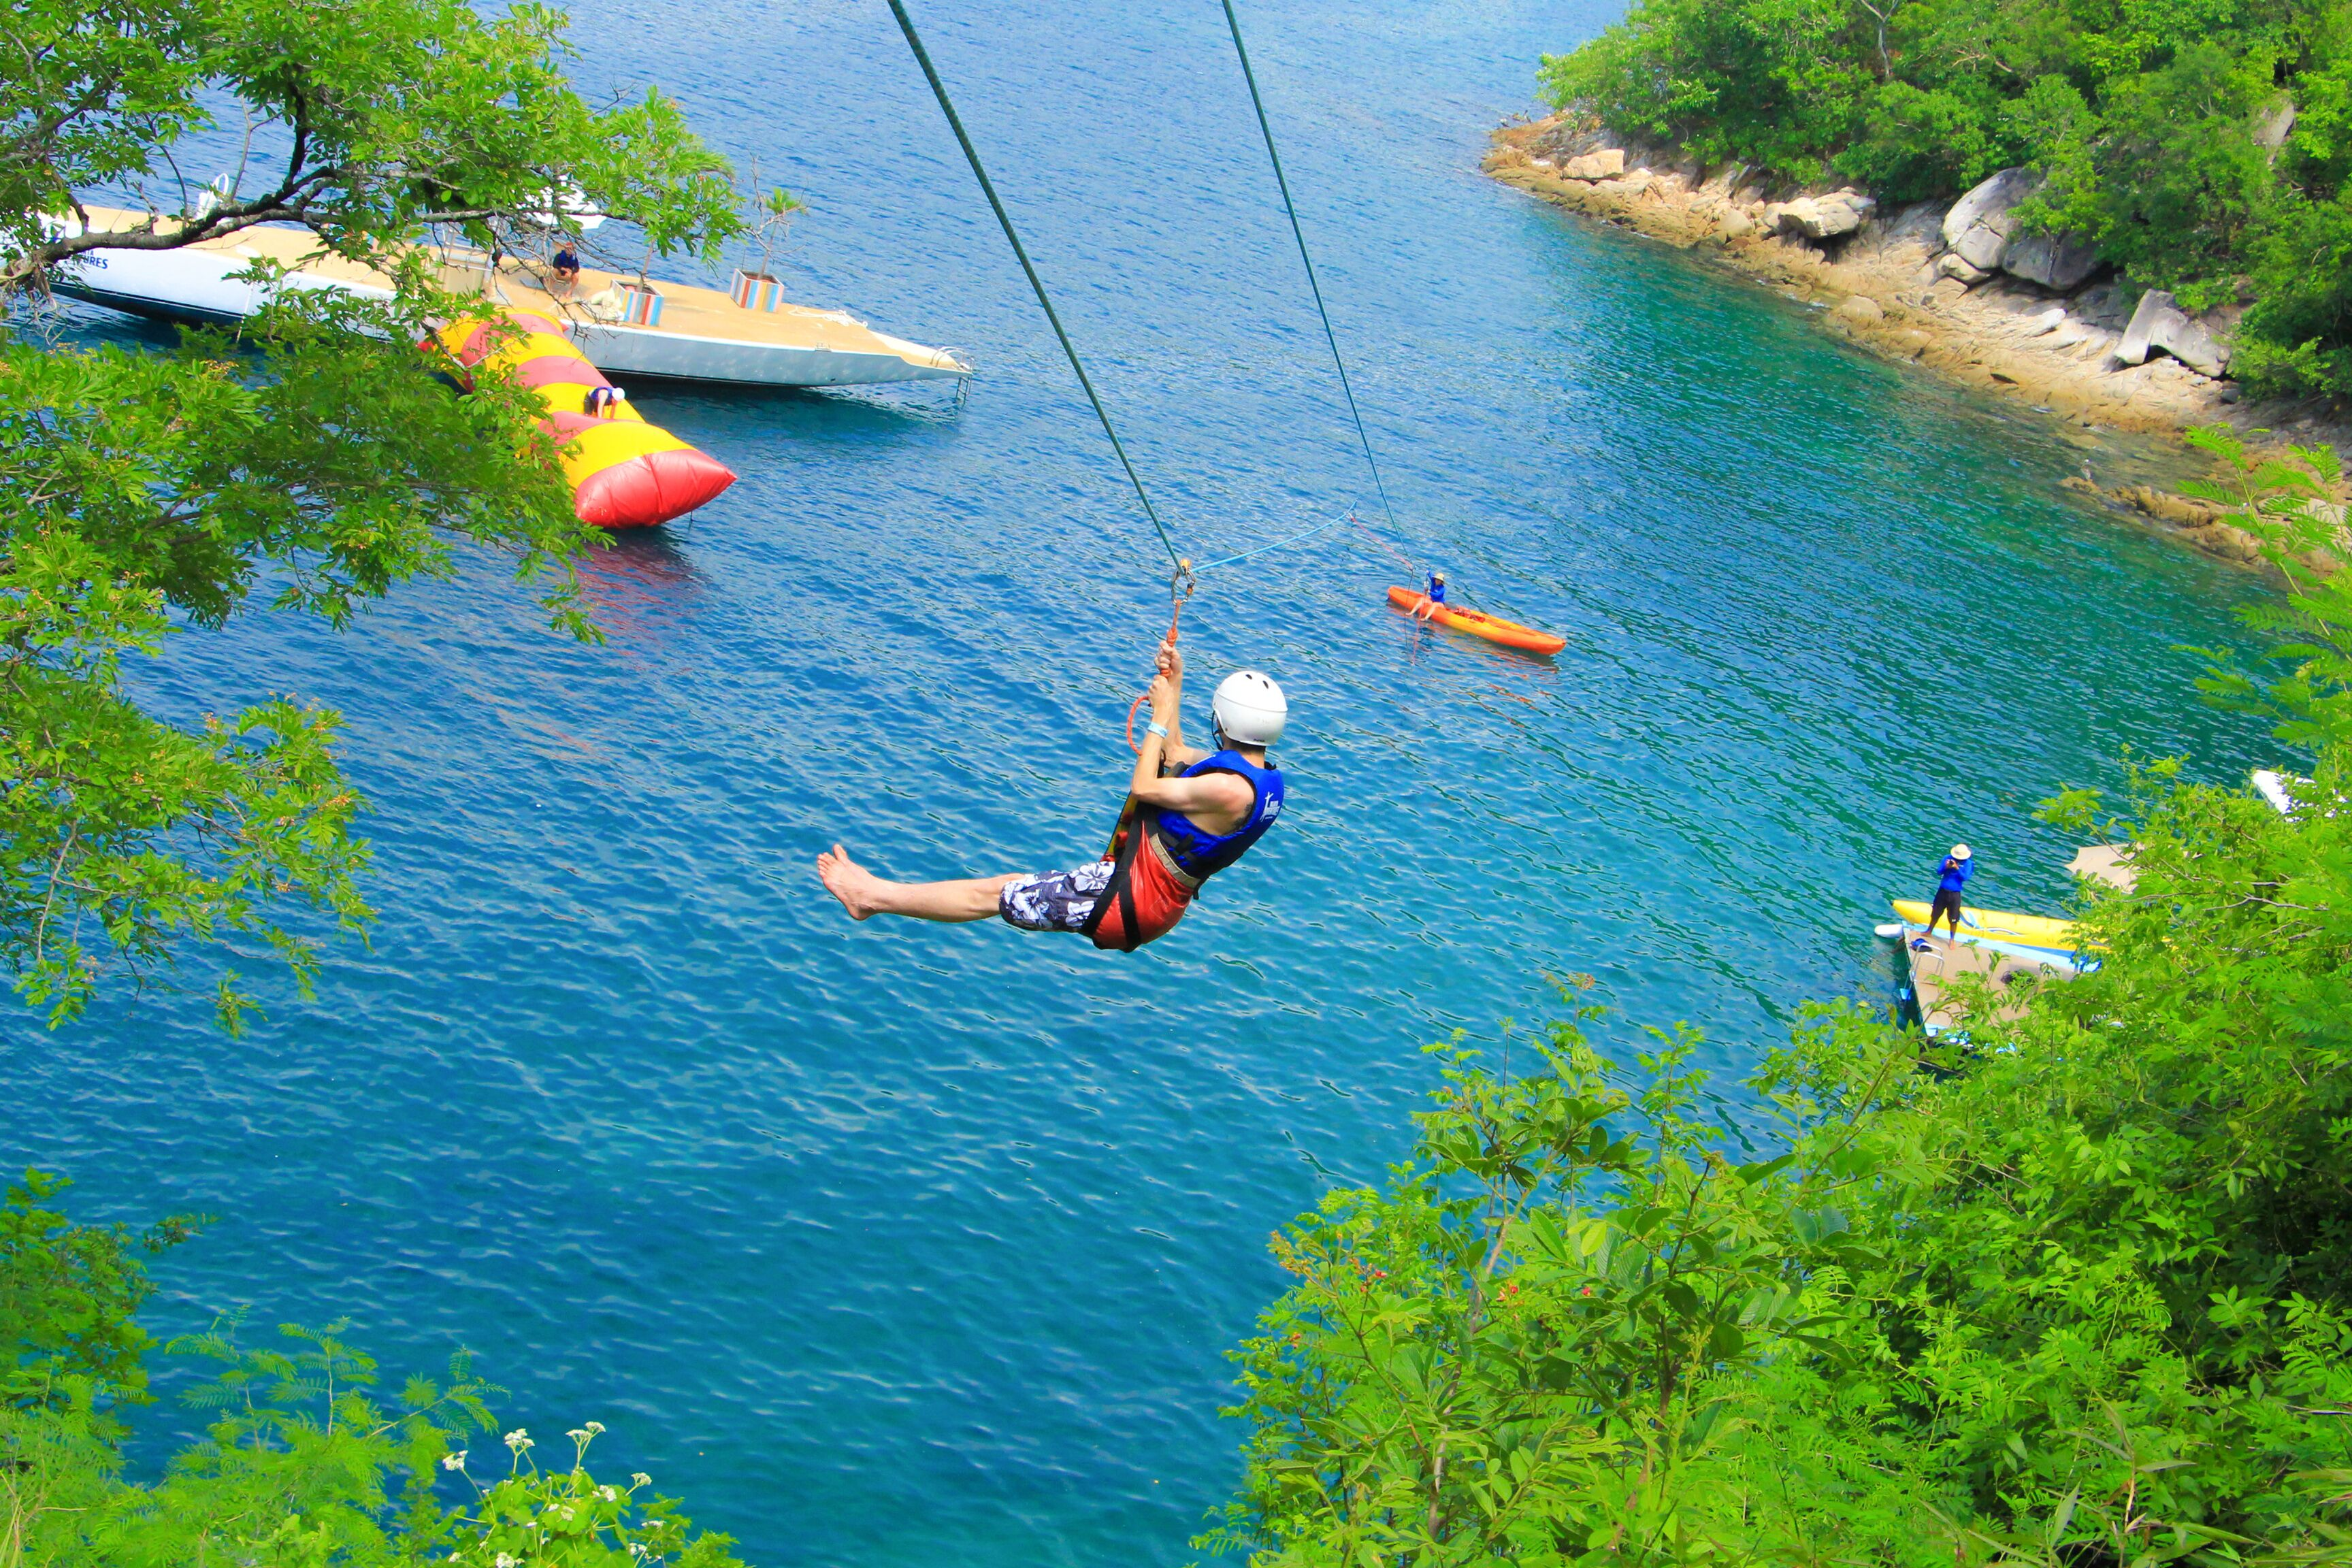 ziplining over water in puerto vallarta